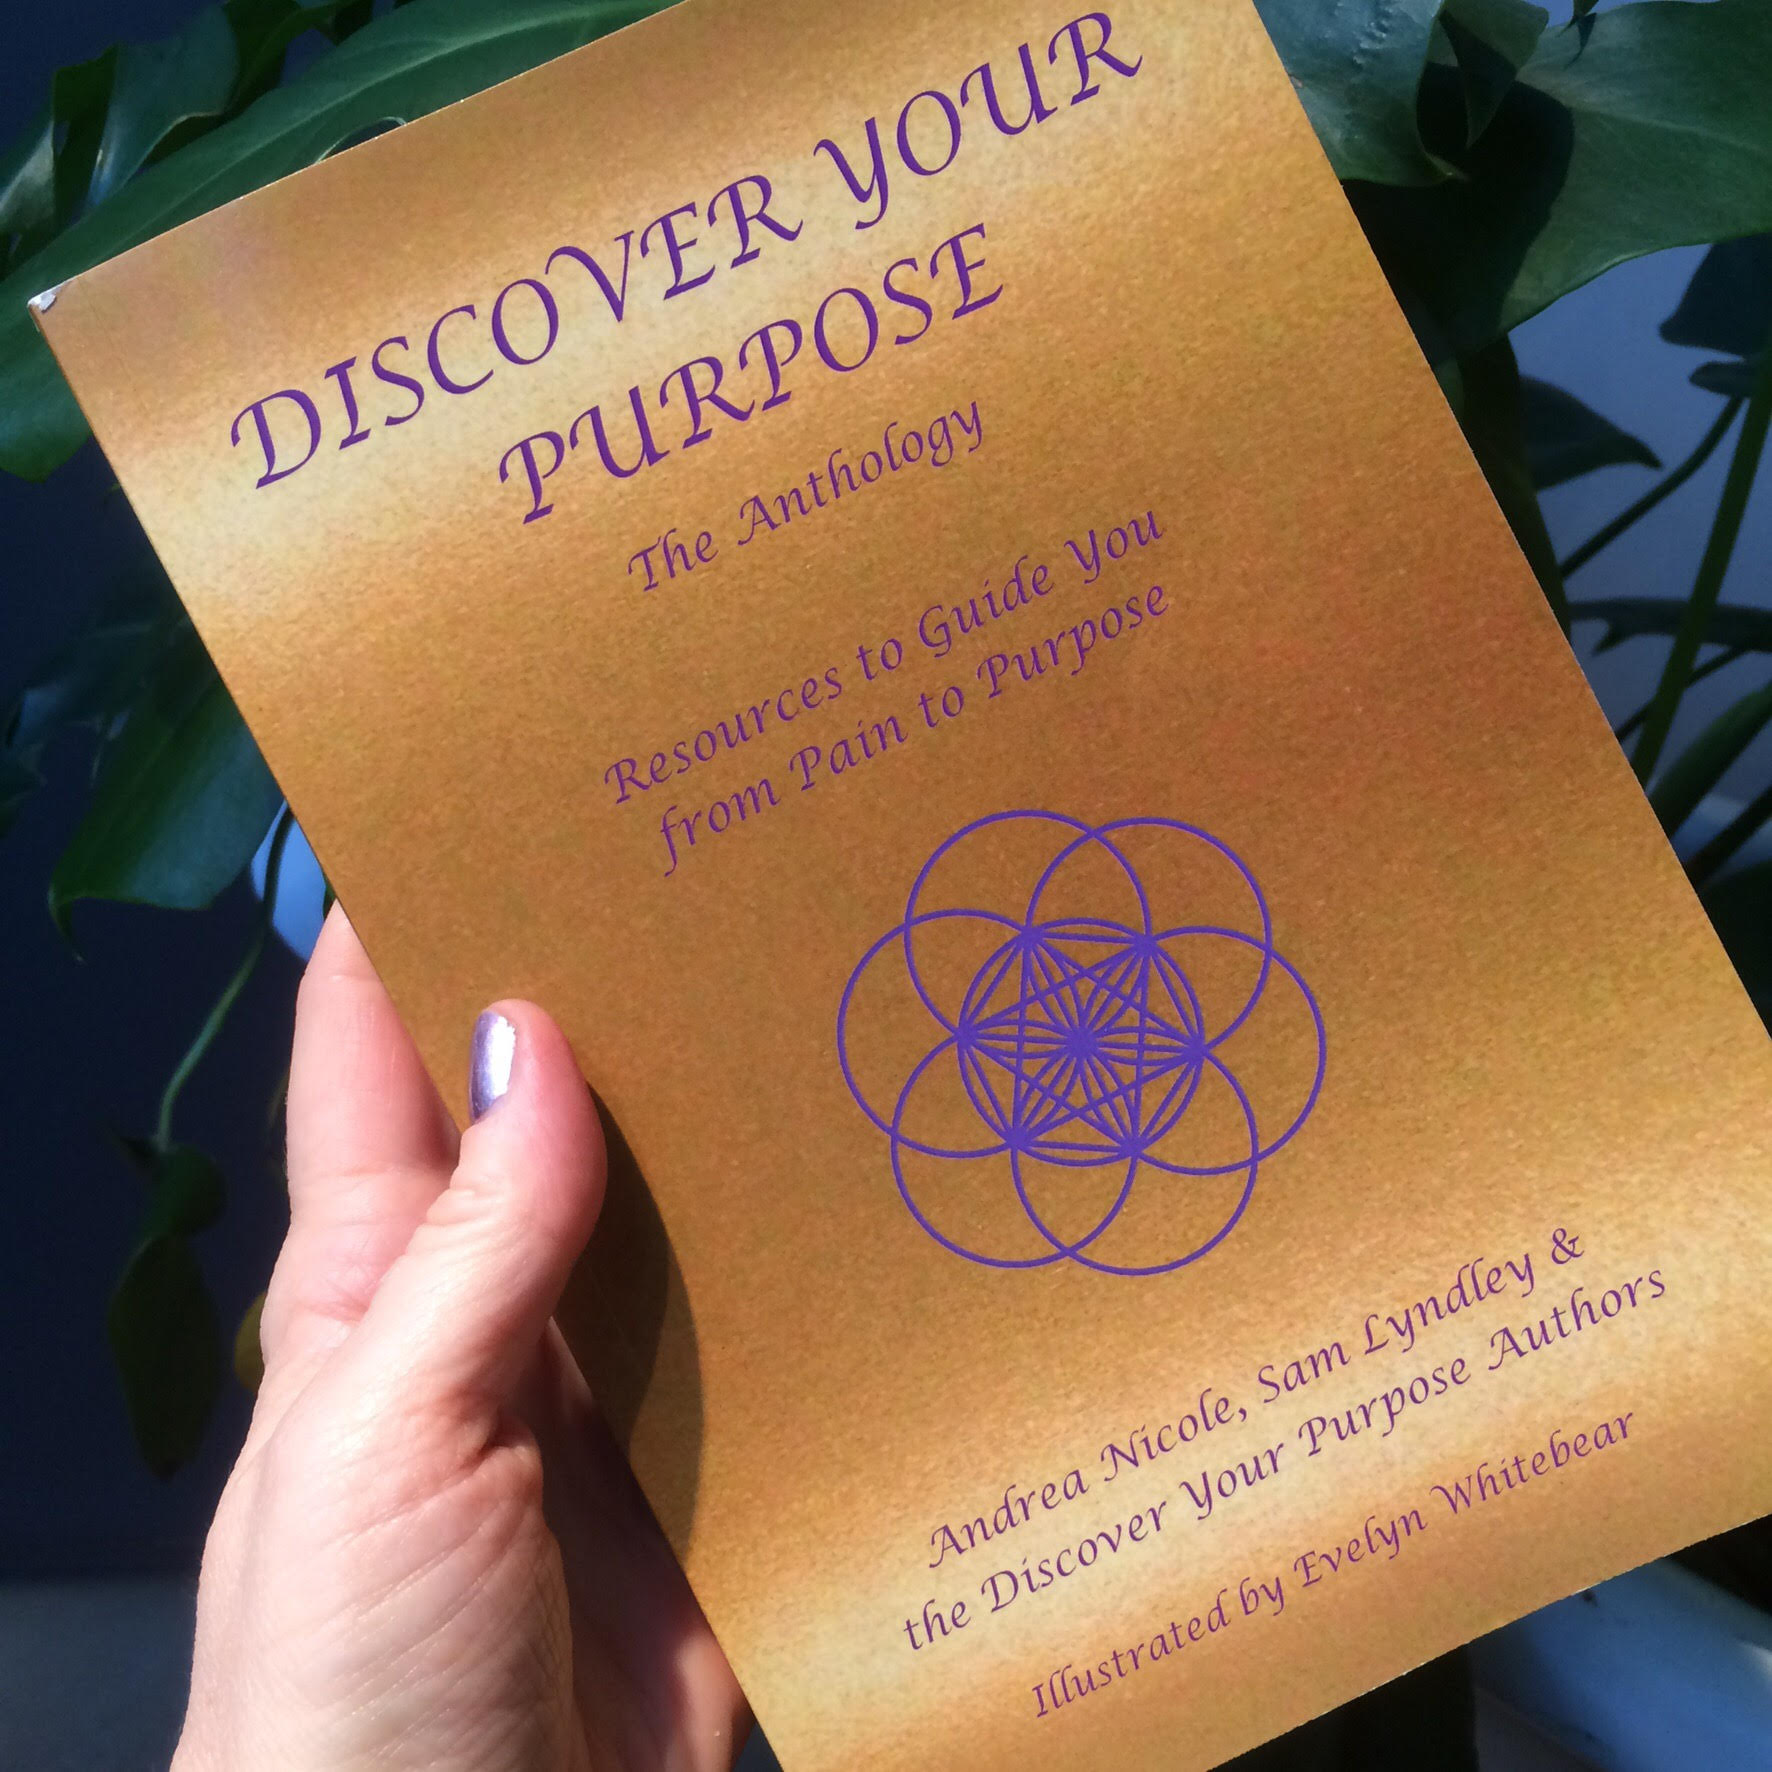 Discover your purpose – The Anthology